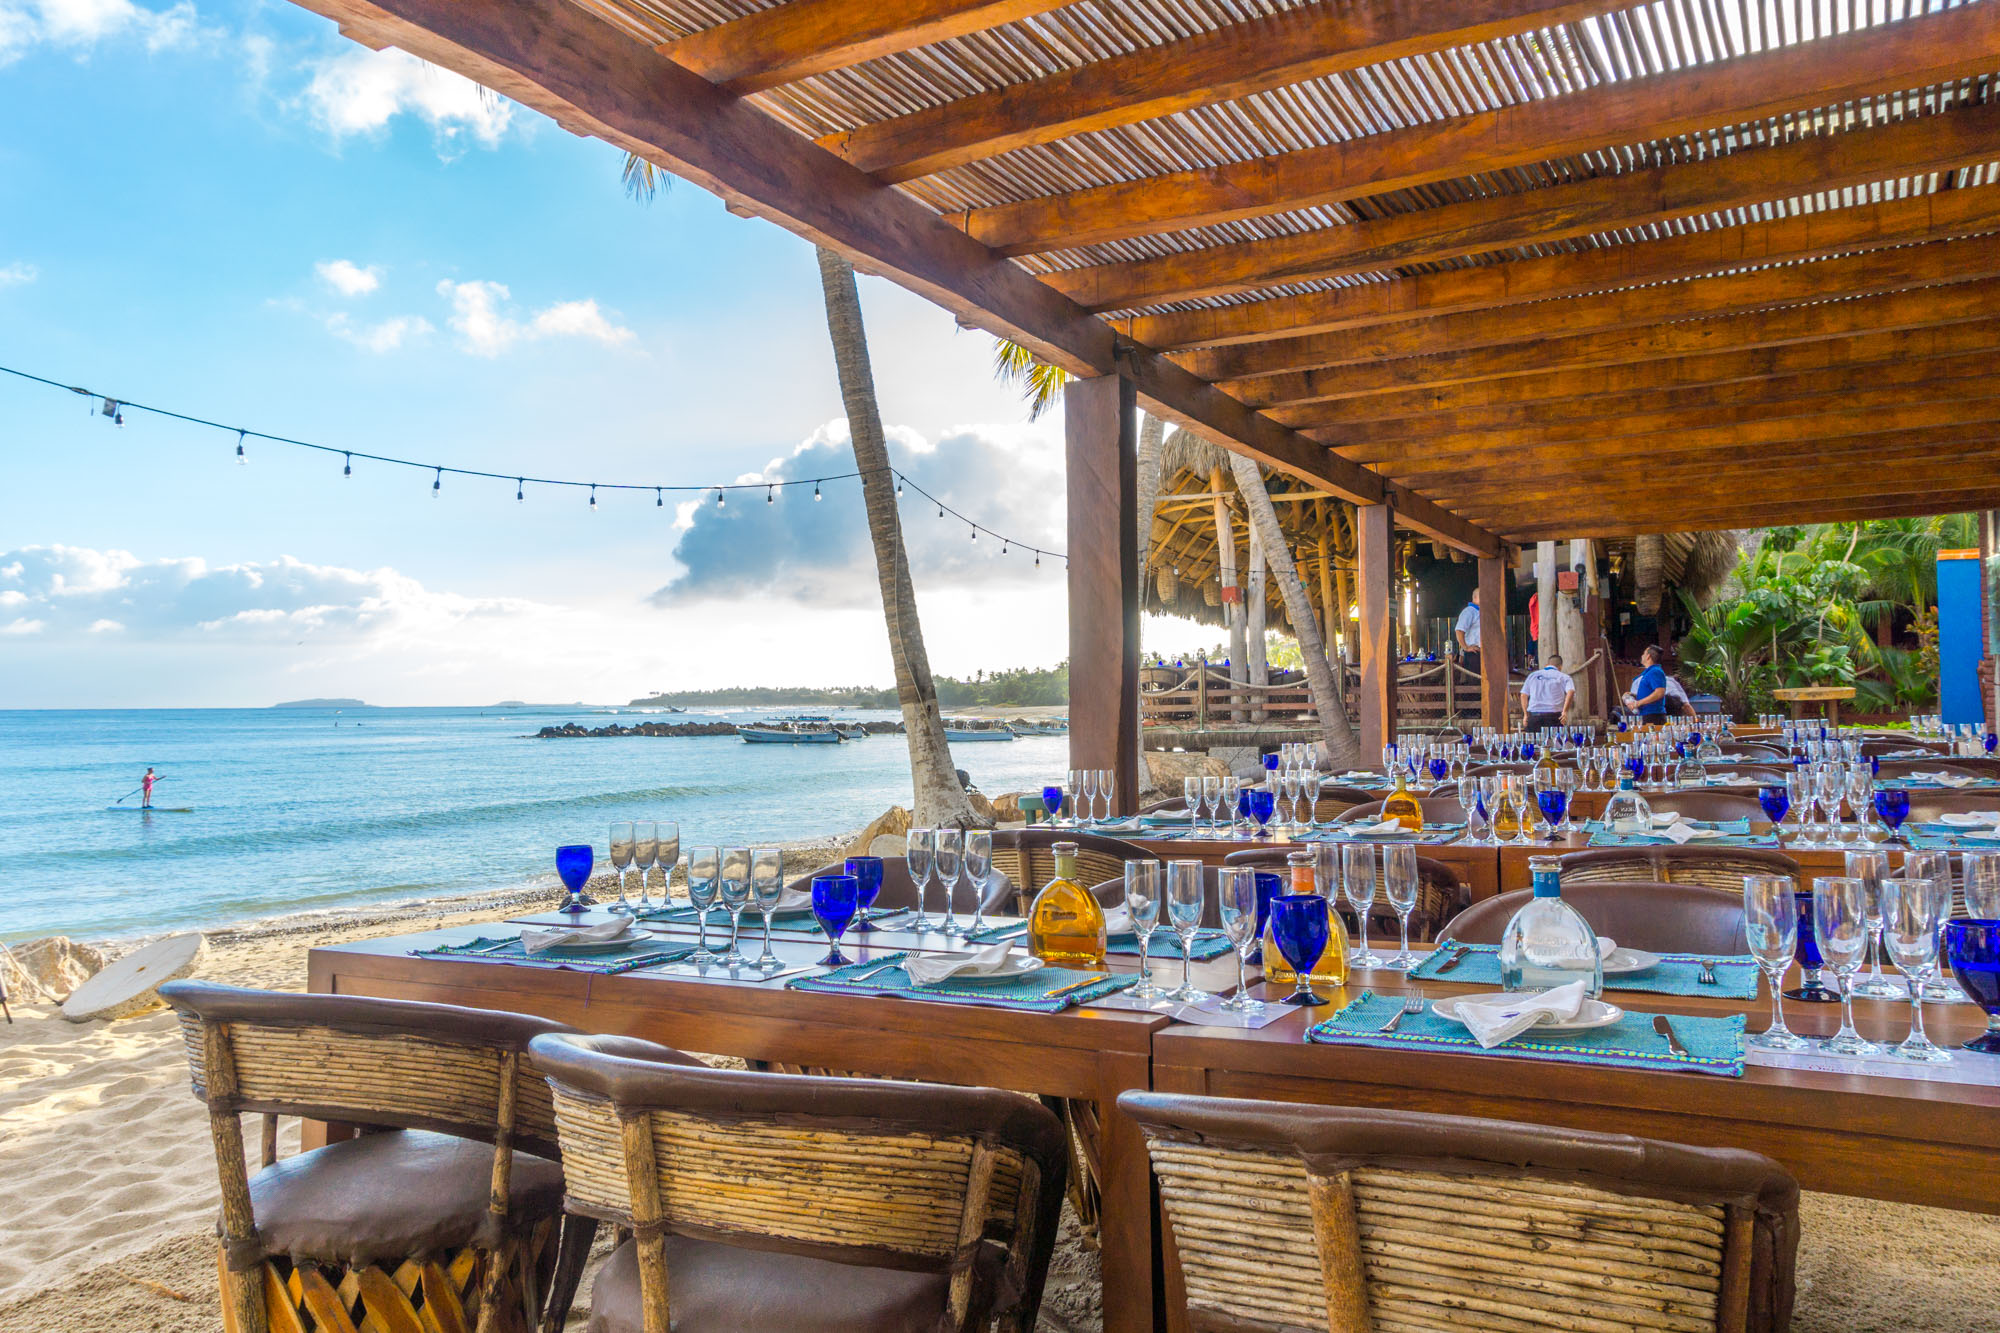 THE-BLUE-SHRIMP-PUNTA-MITA-RESTAURANT-SPORT-BAR-EVENTS-FEB-23-2017-14